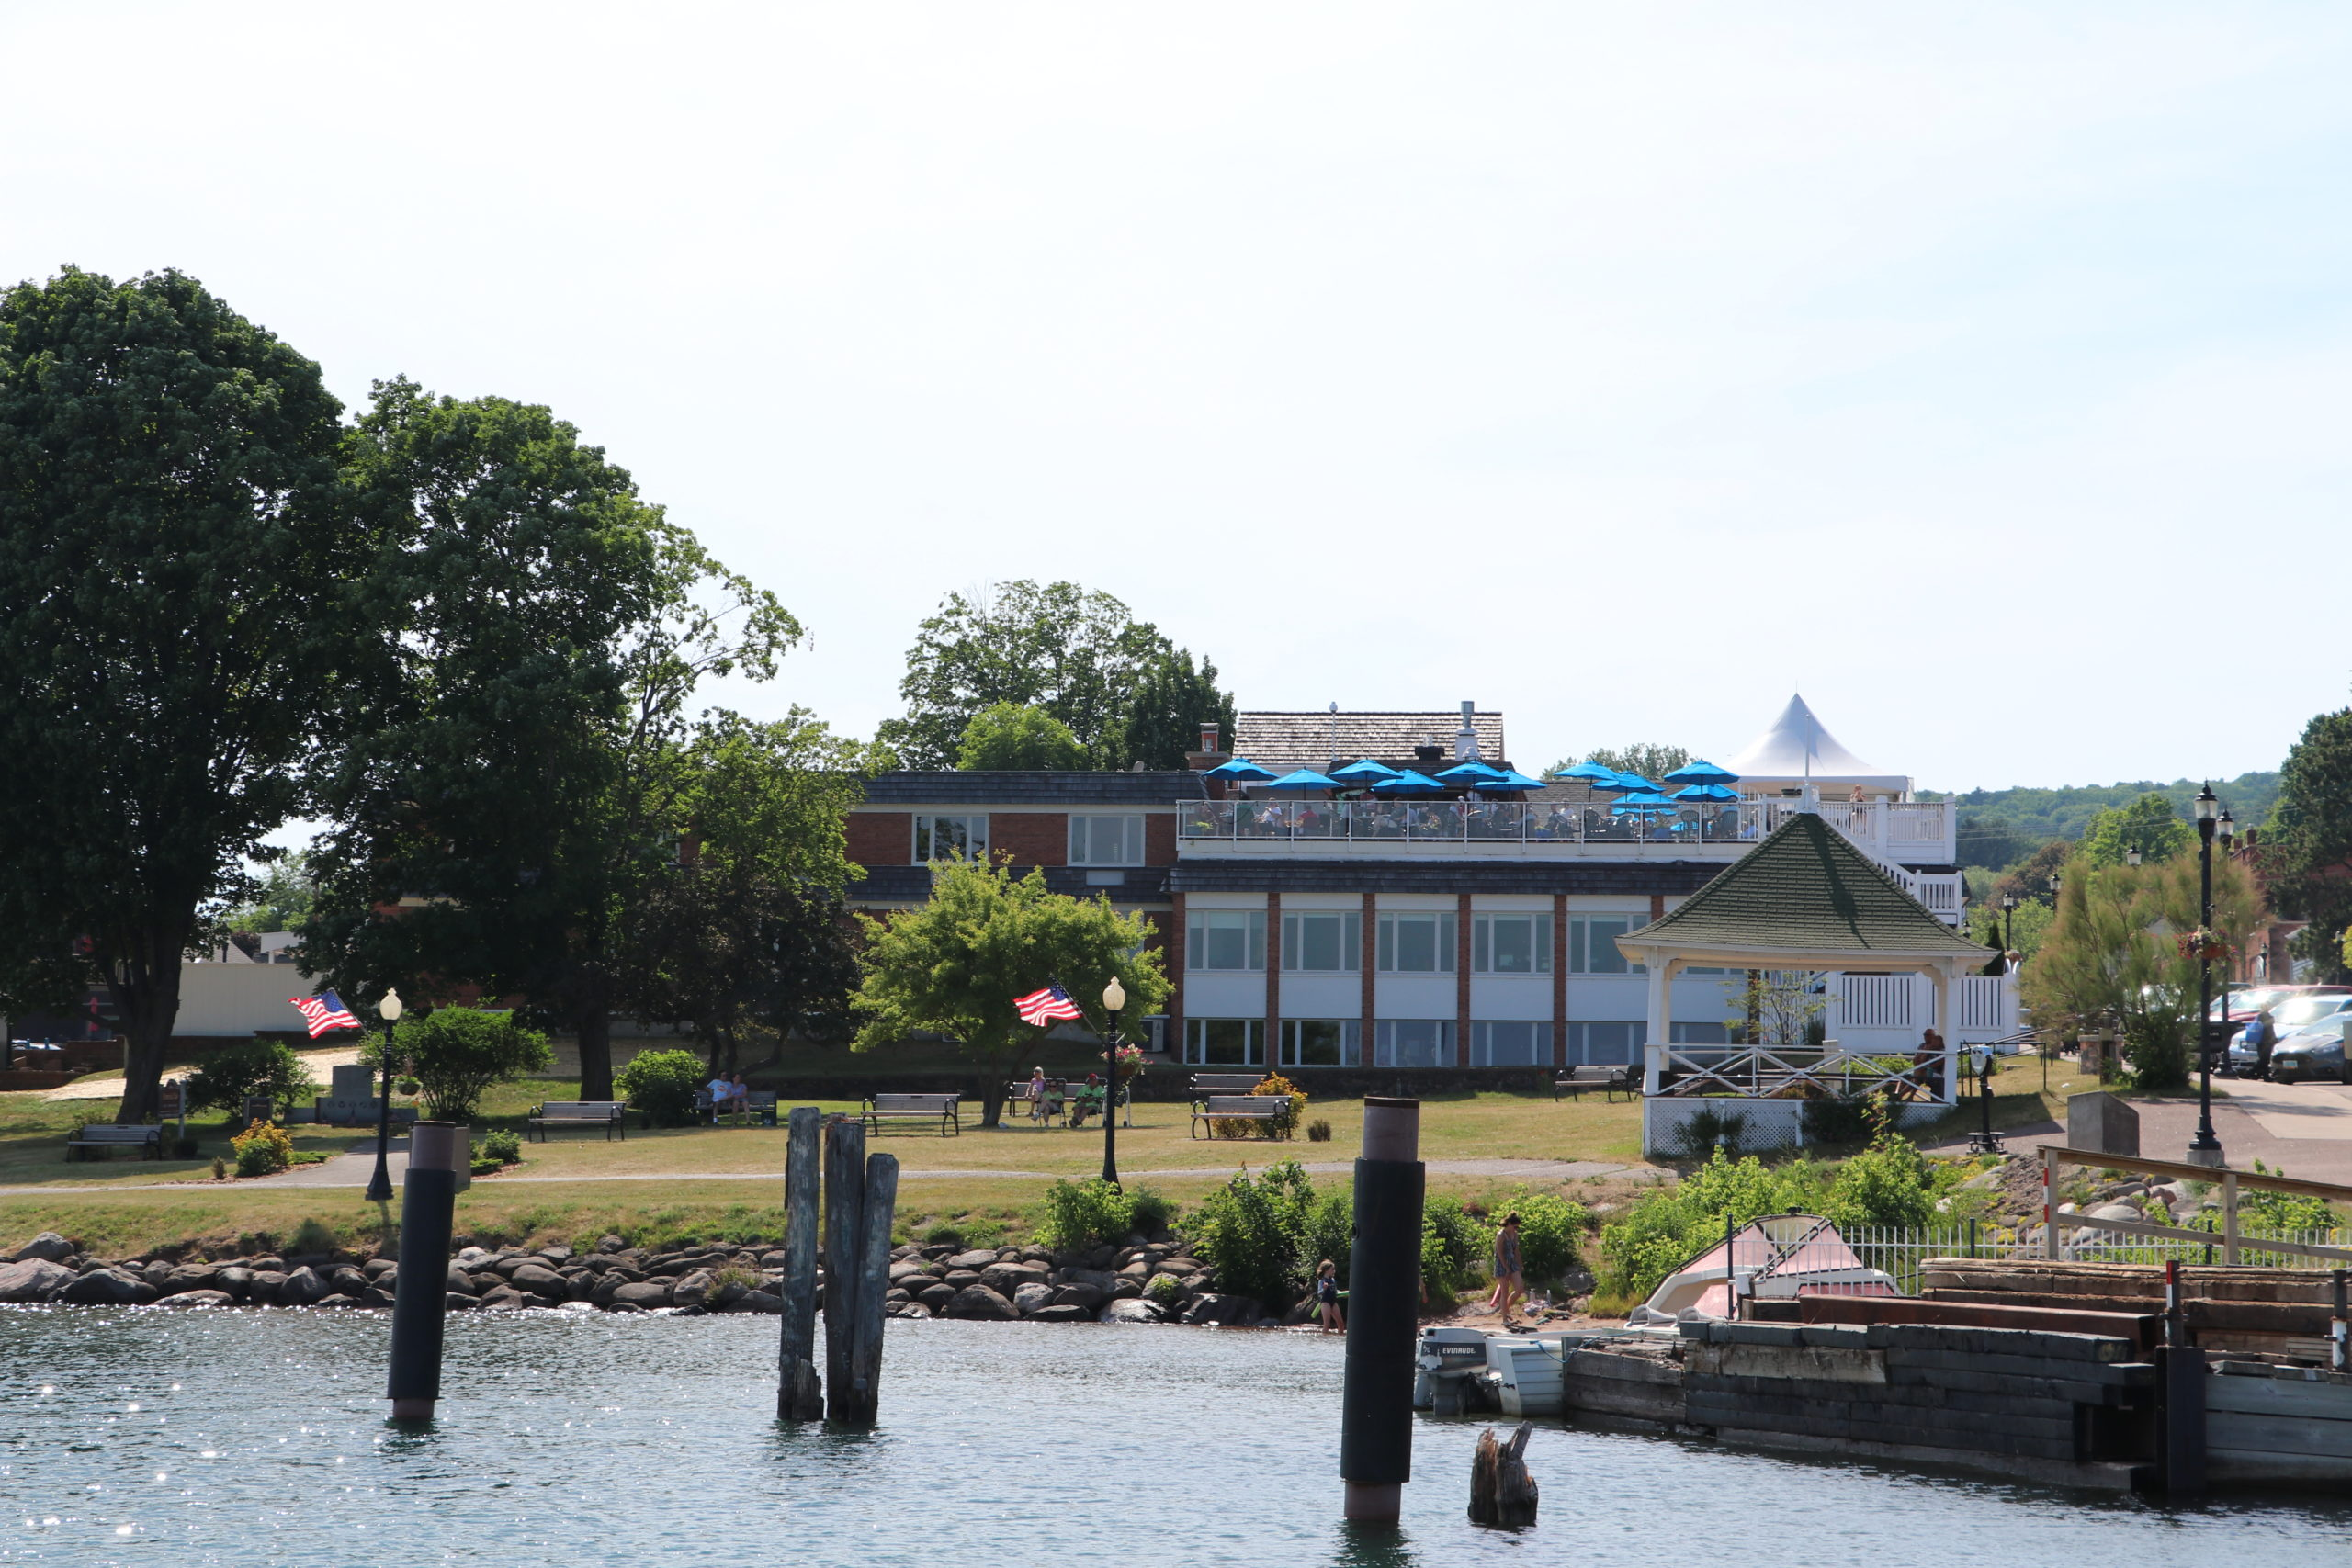 bayfield inn view from the lake